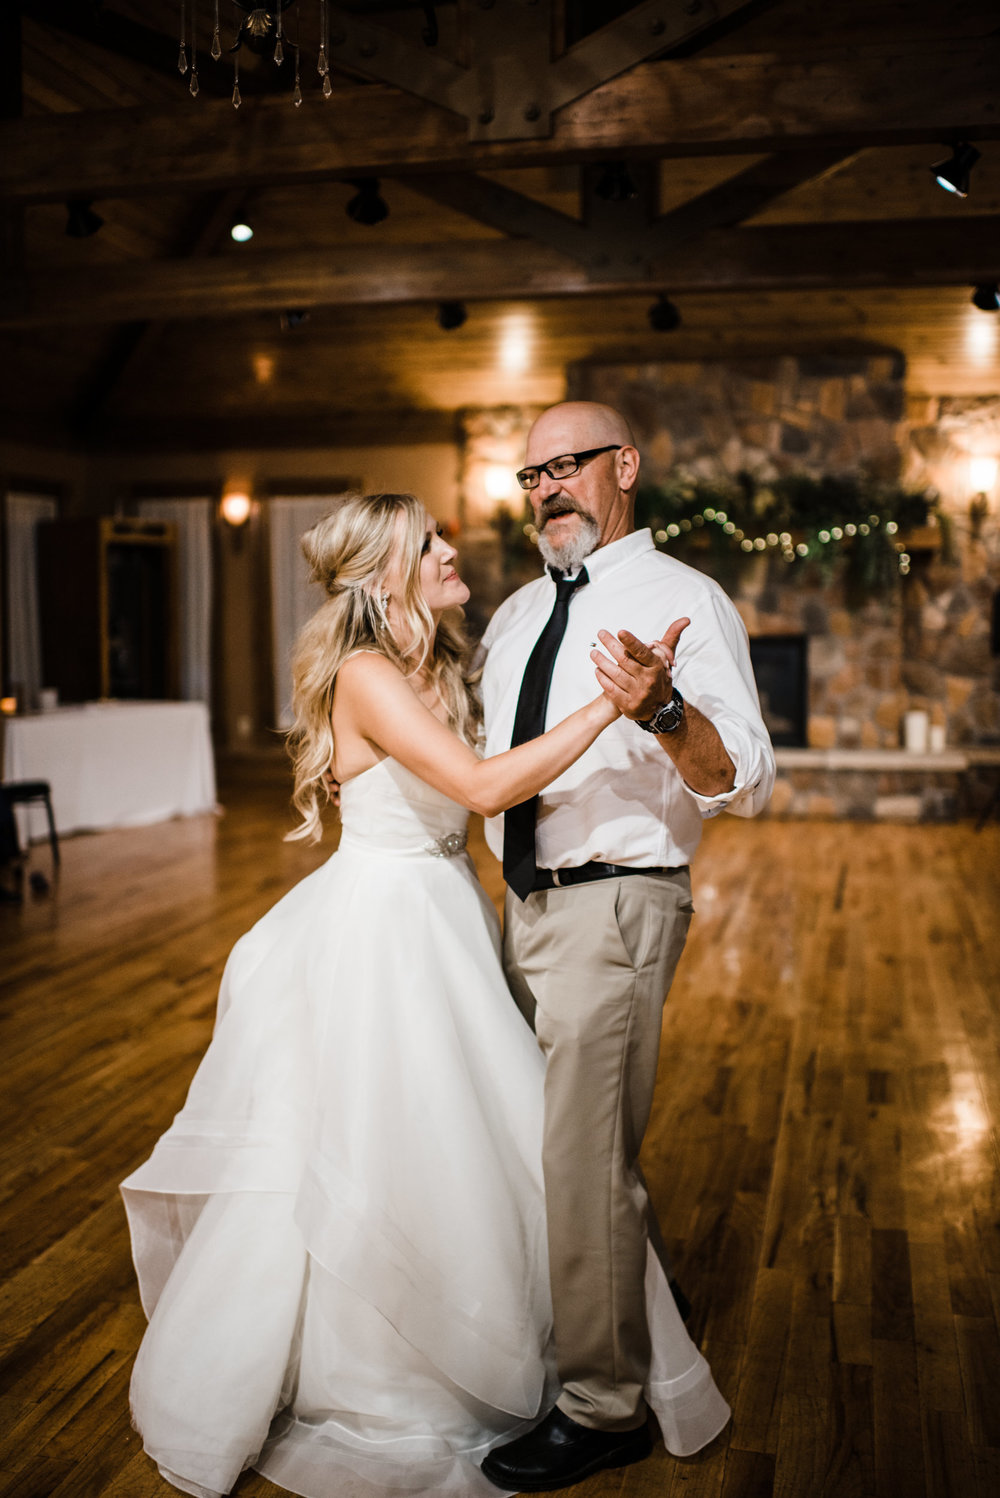 Colorado mountain wedding photographer at Brookeside Gardens wedding reception dances